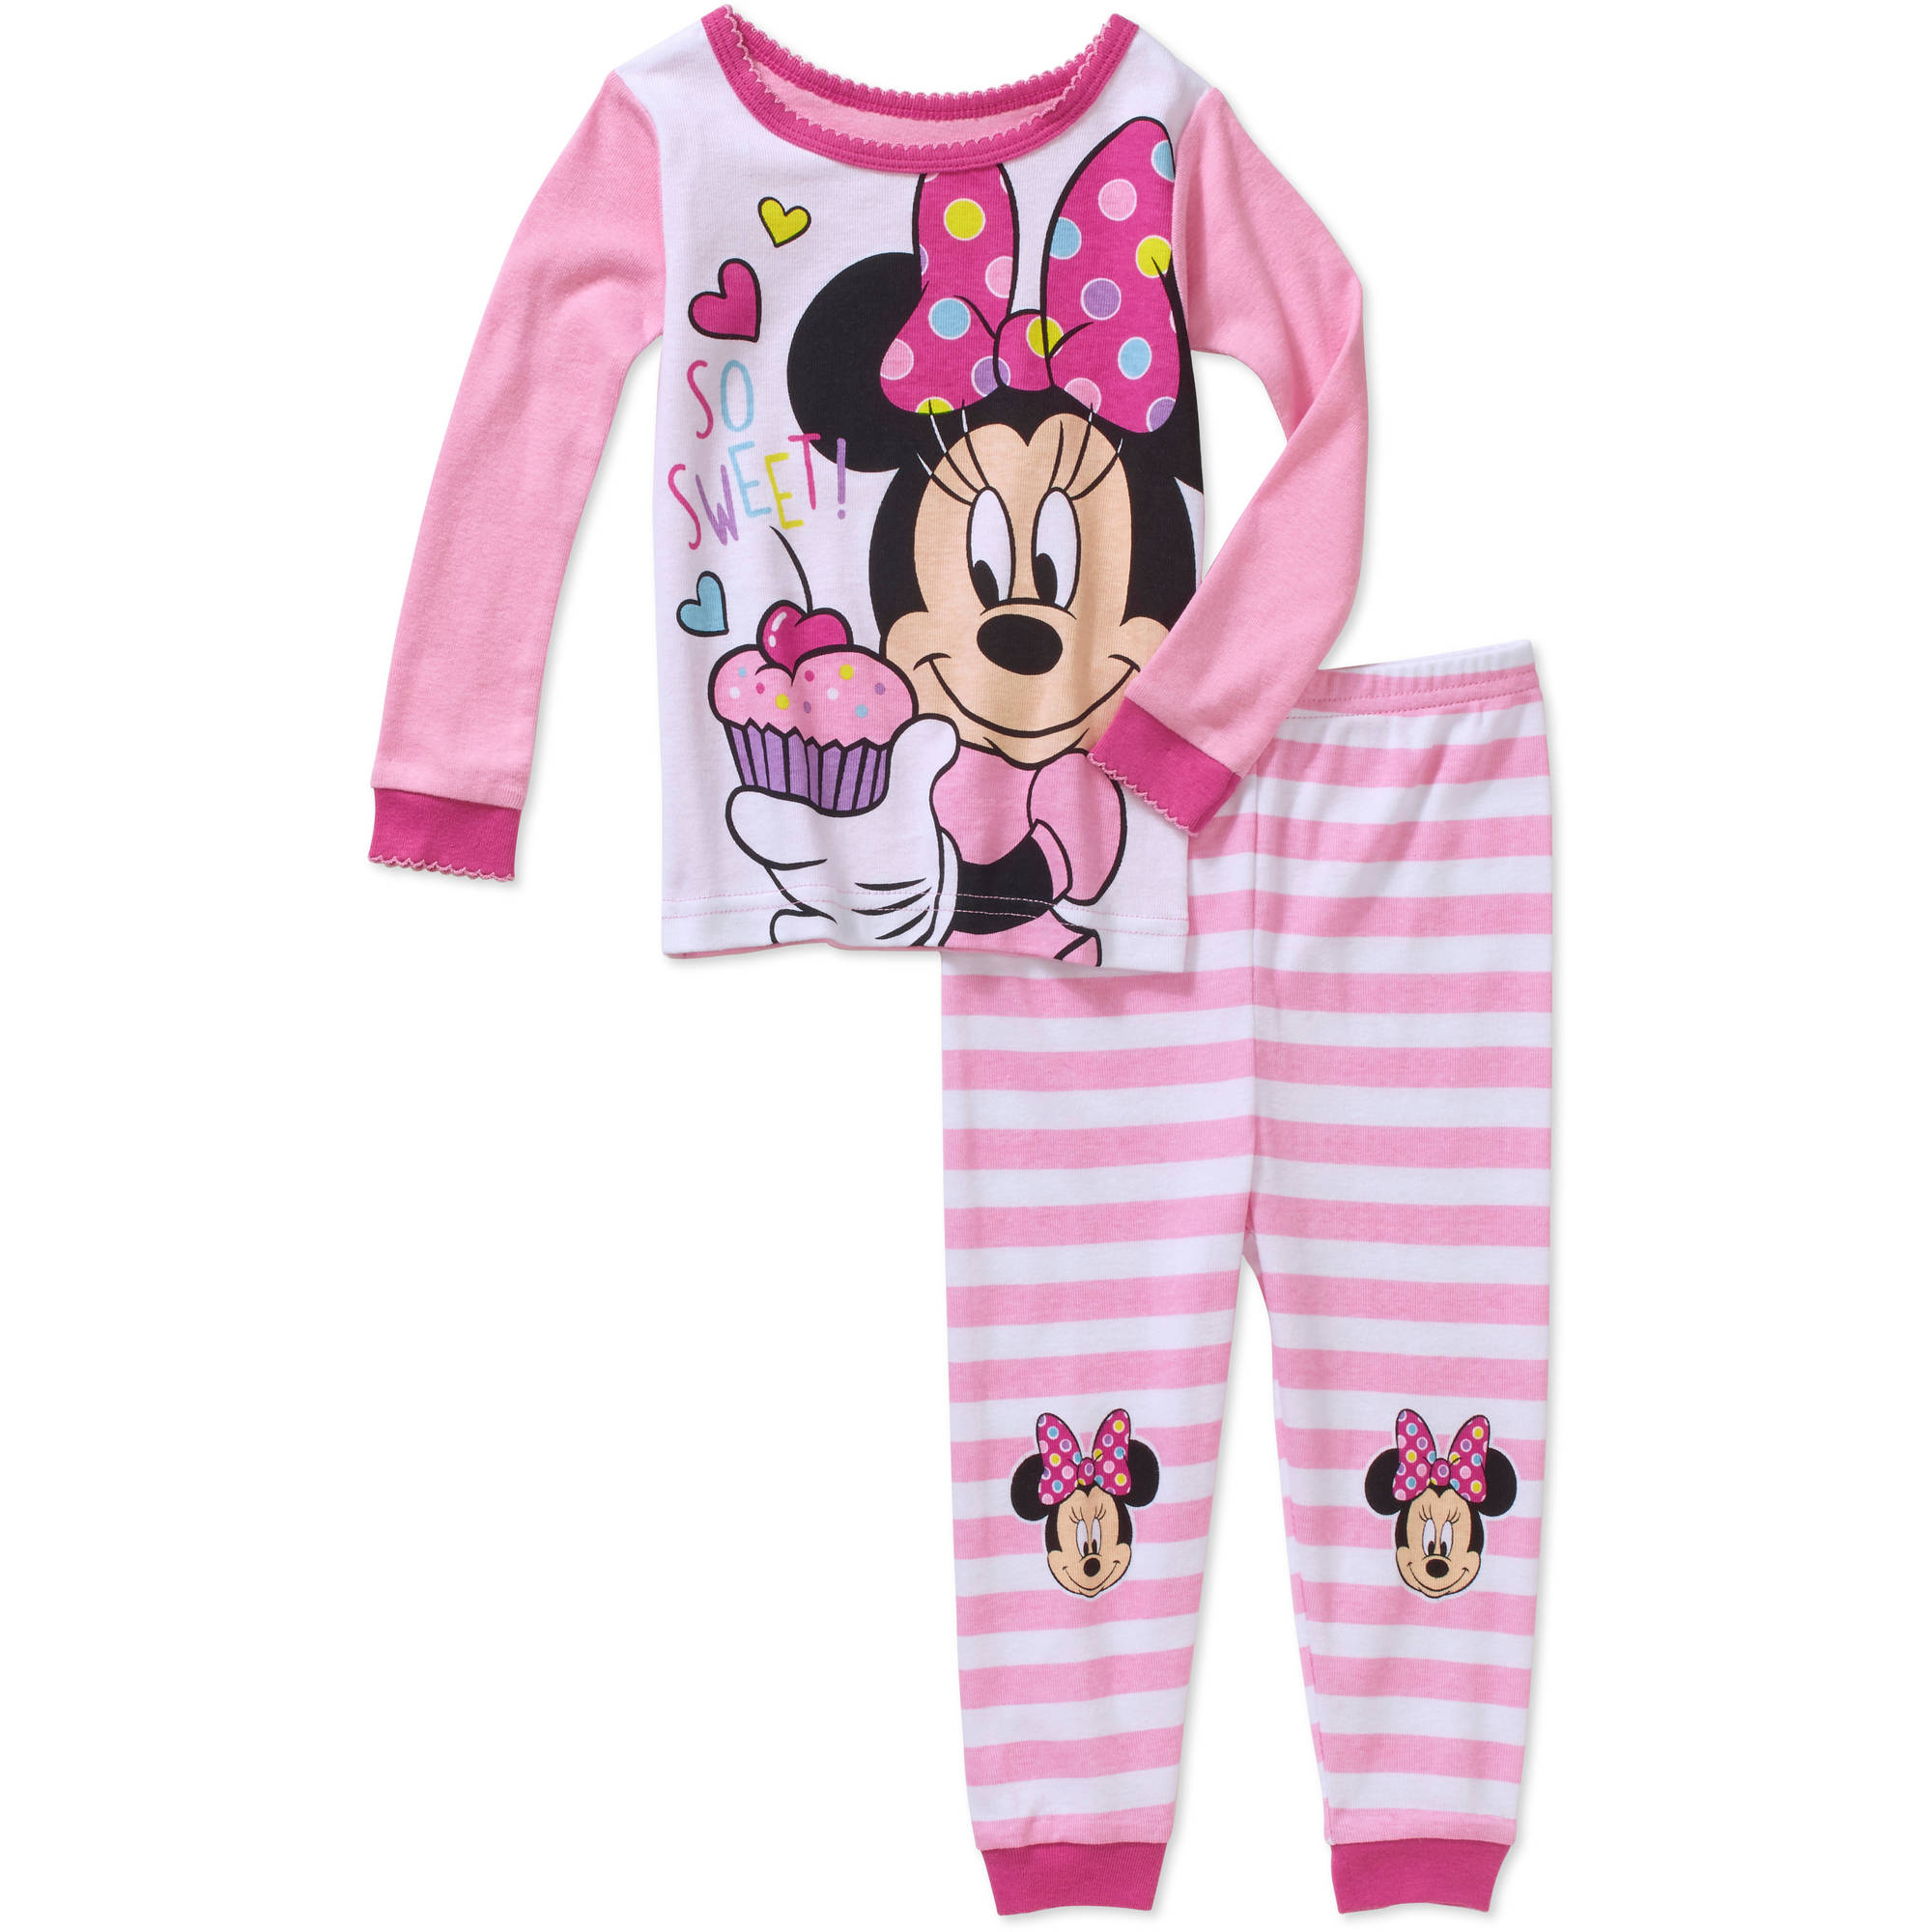 Minnie Mouse Newborn Baby Girl So Sweet Cotton Tight Fit Pajamas 2pc Set